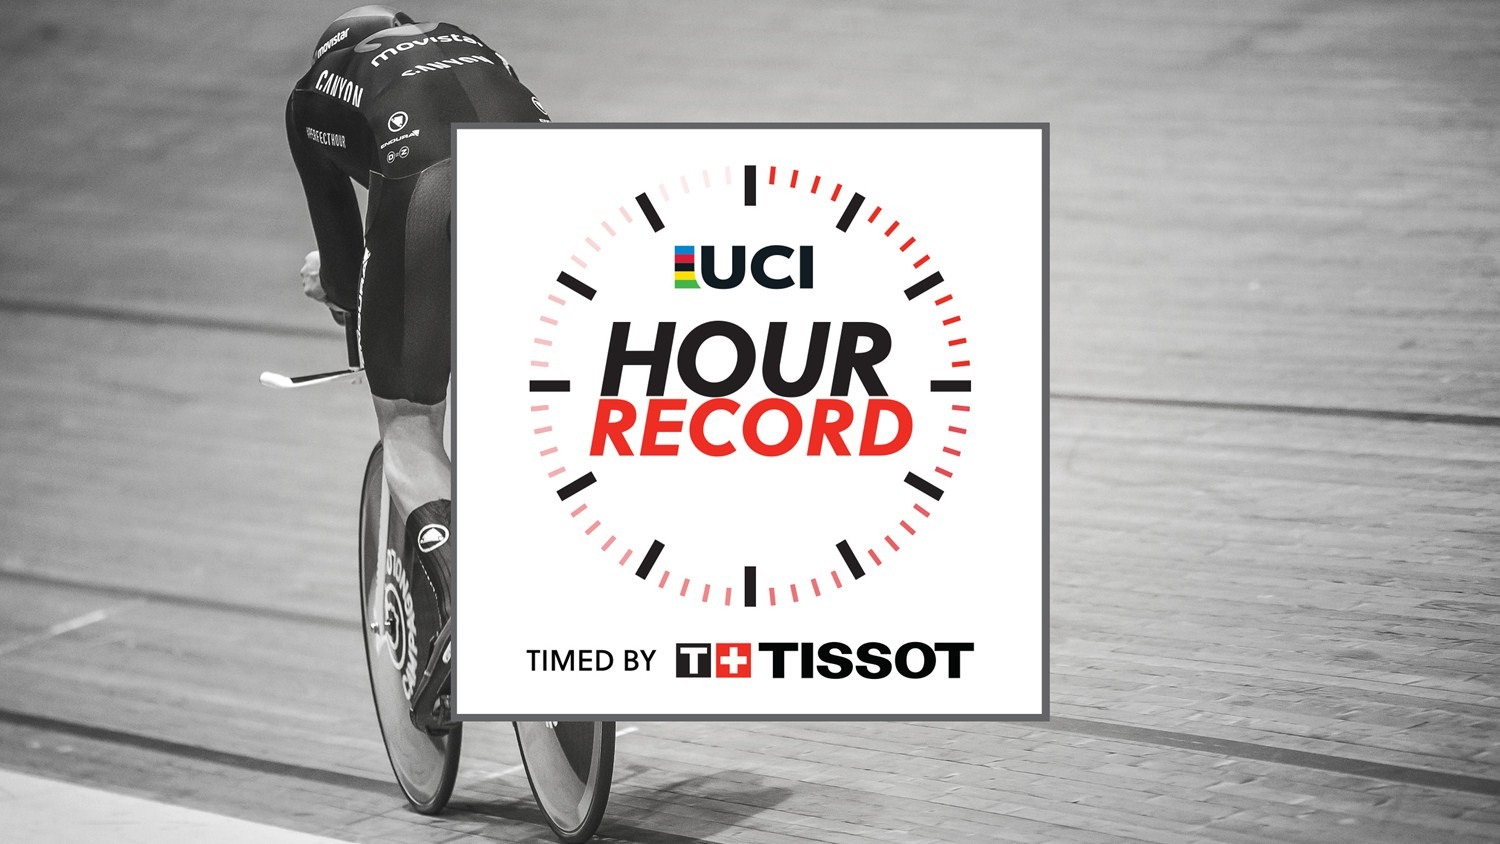 The UCI One hour Record